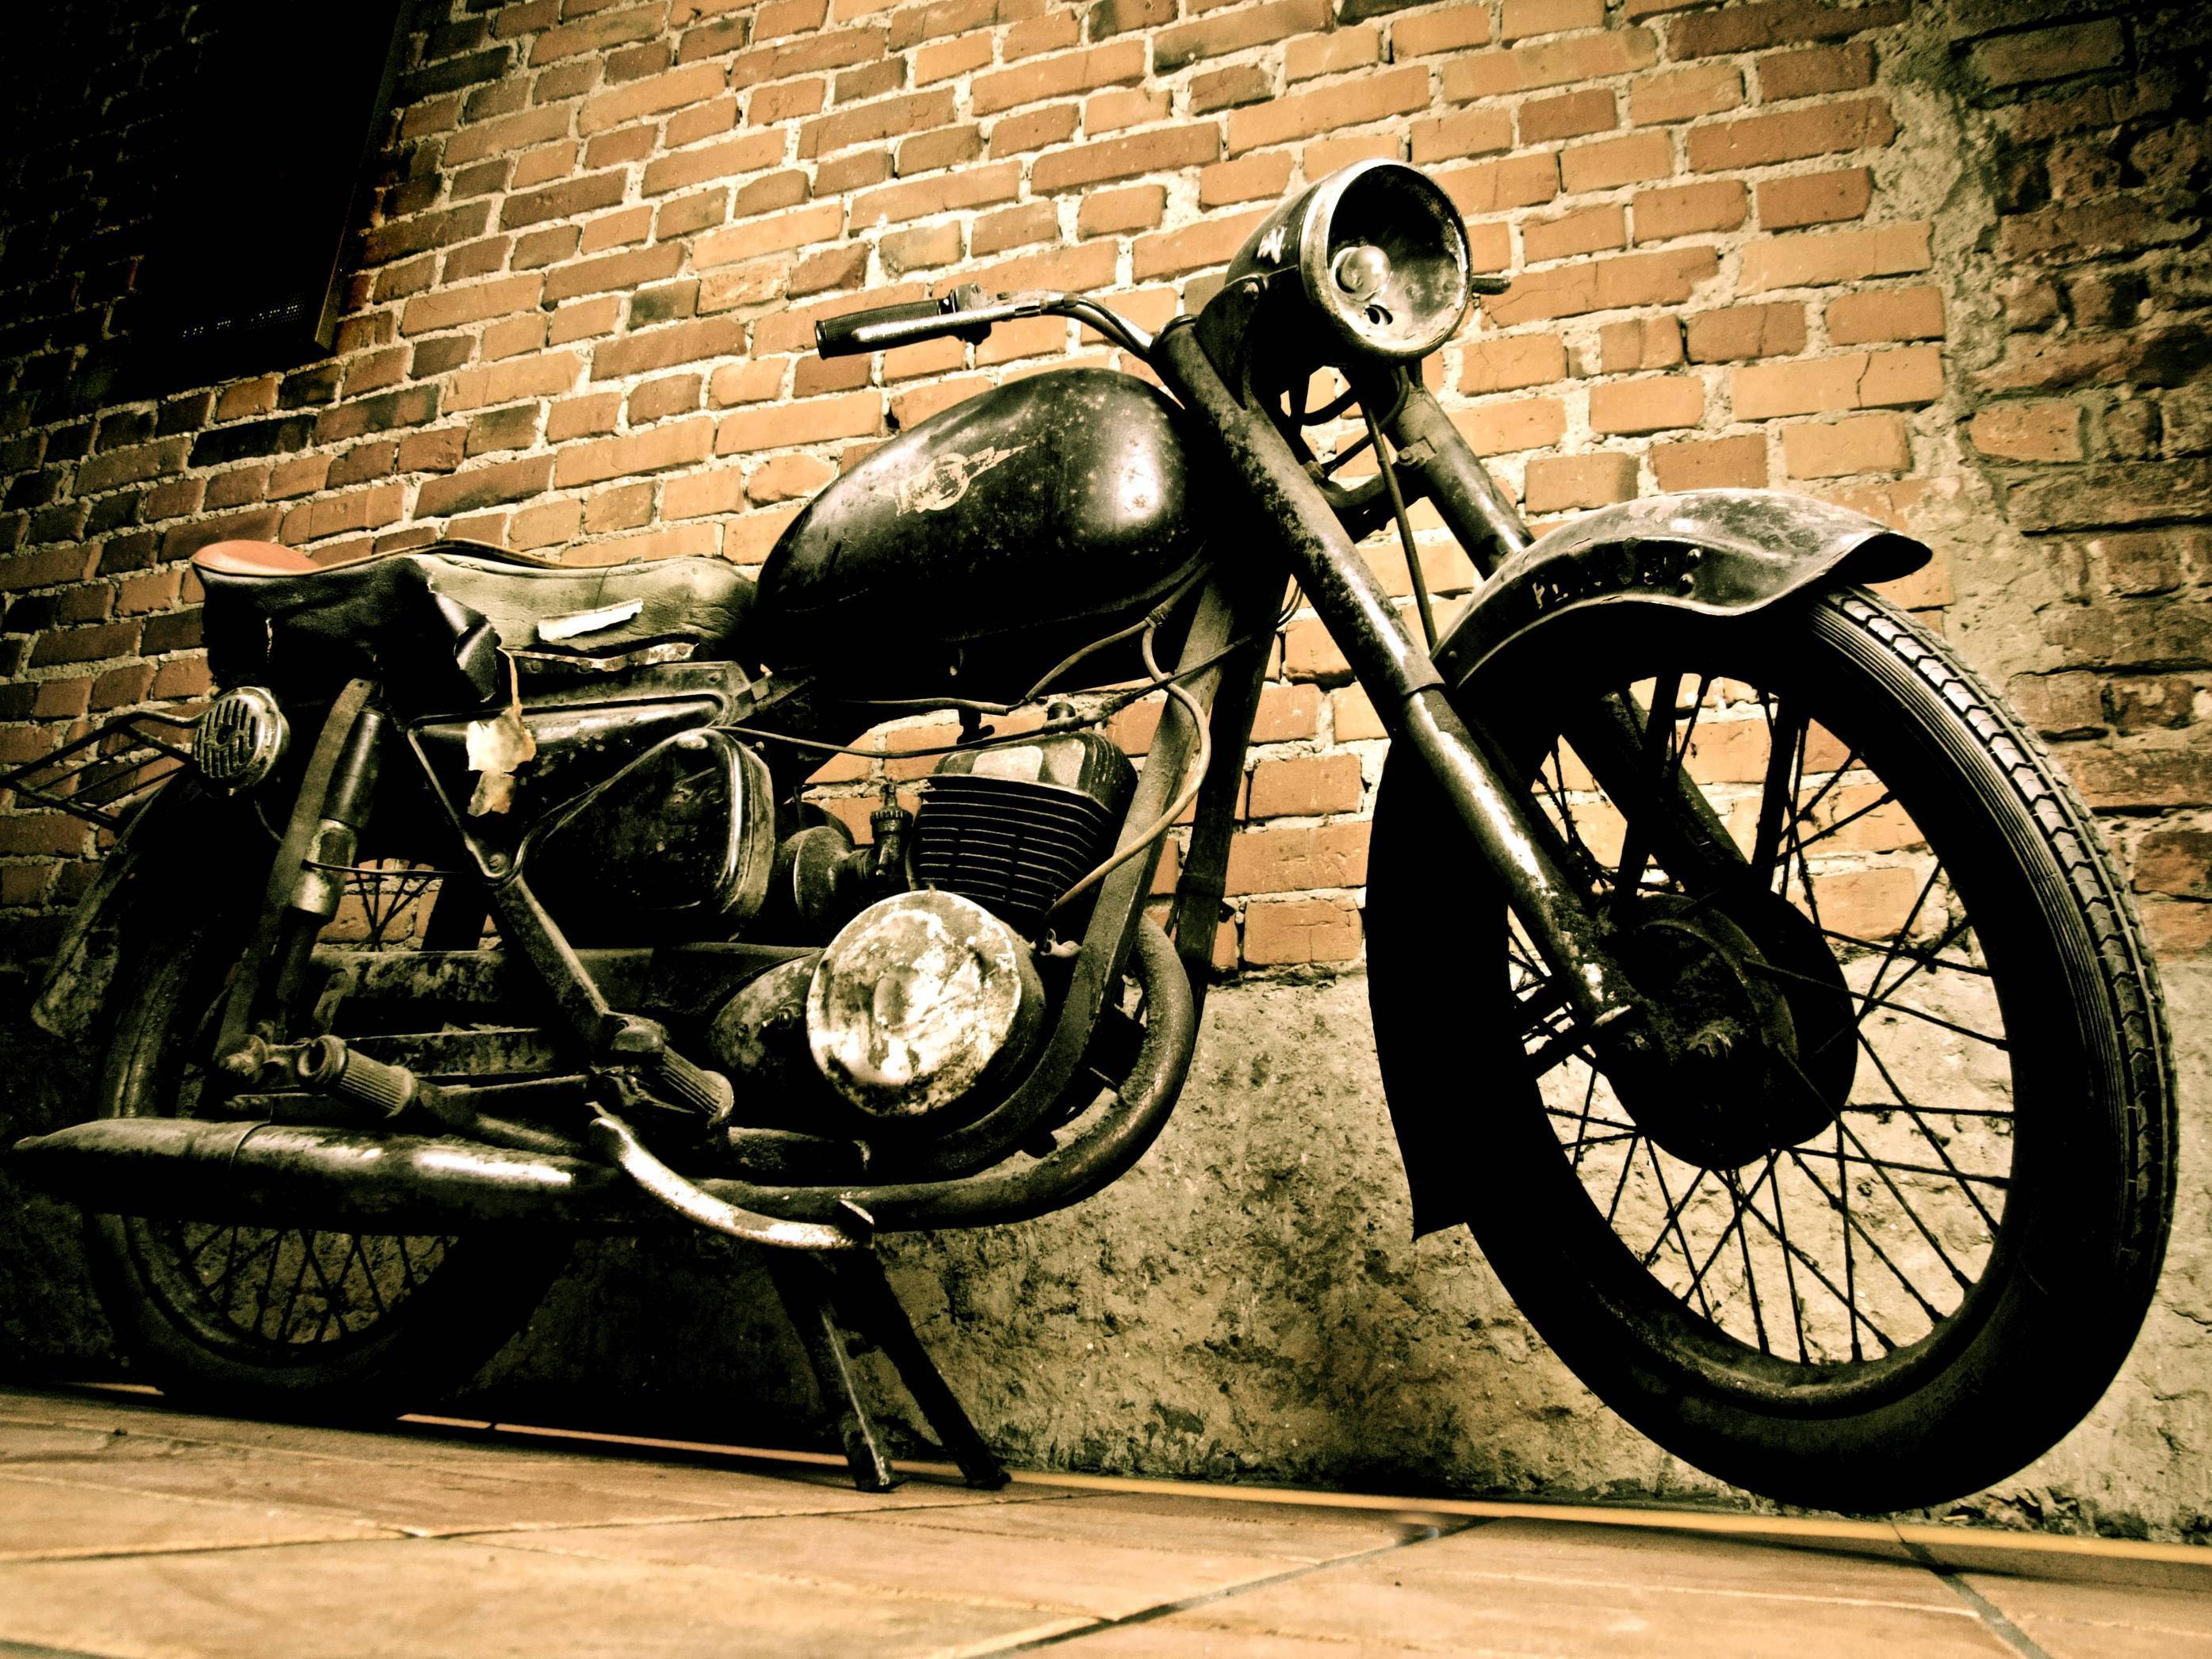 Vintage Motorcycle Wallpapers Top Free Vintage Motorcycle Backgrounds Wallpaperaccess